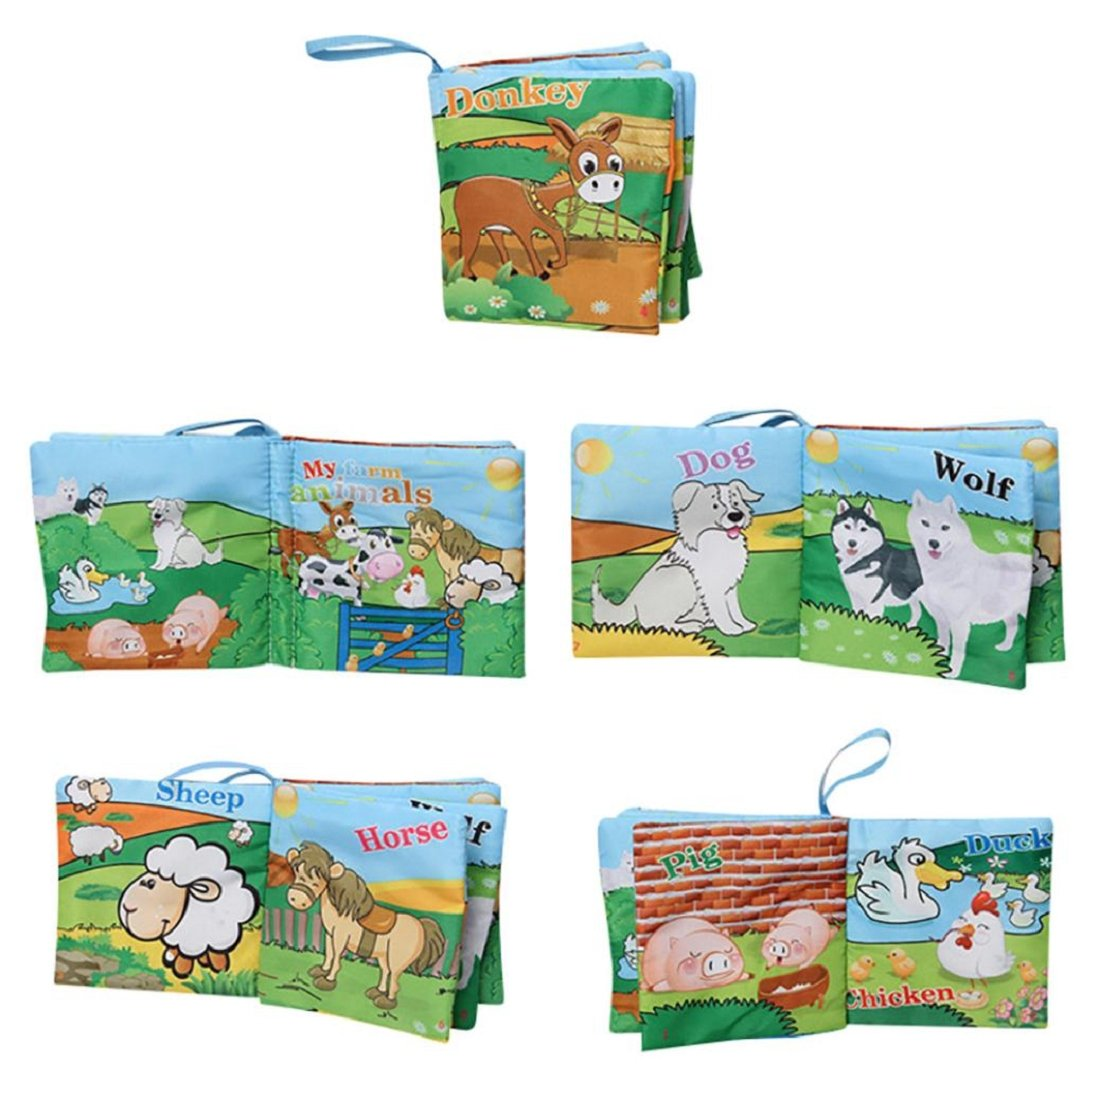 Soft Cloth Baby Book,Handmade Educational Toys for Baby, Interactive Baby Gifts Boy Girl, Gift Box & Book,GBell (B)